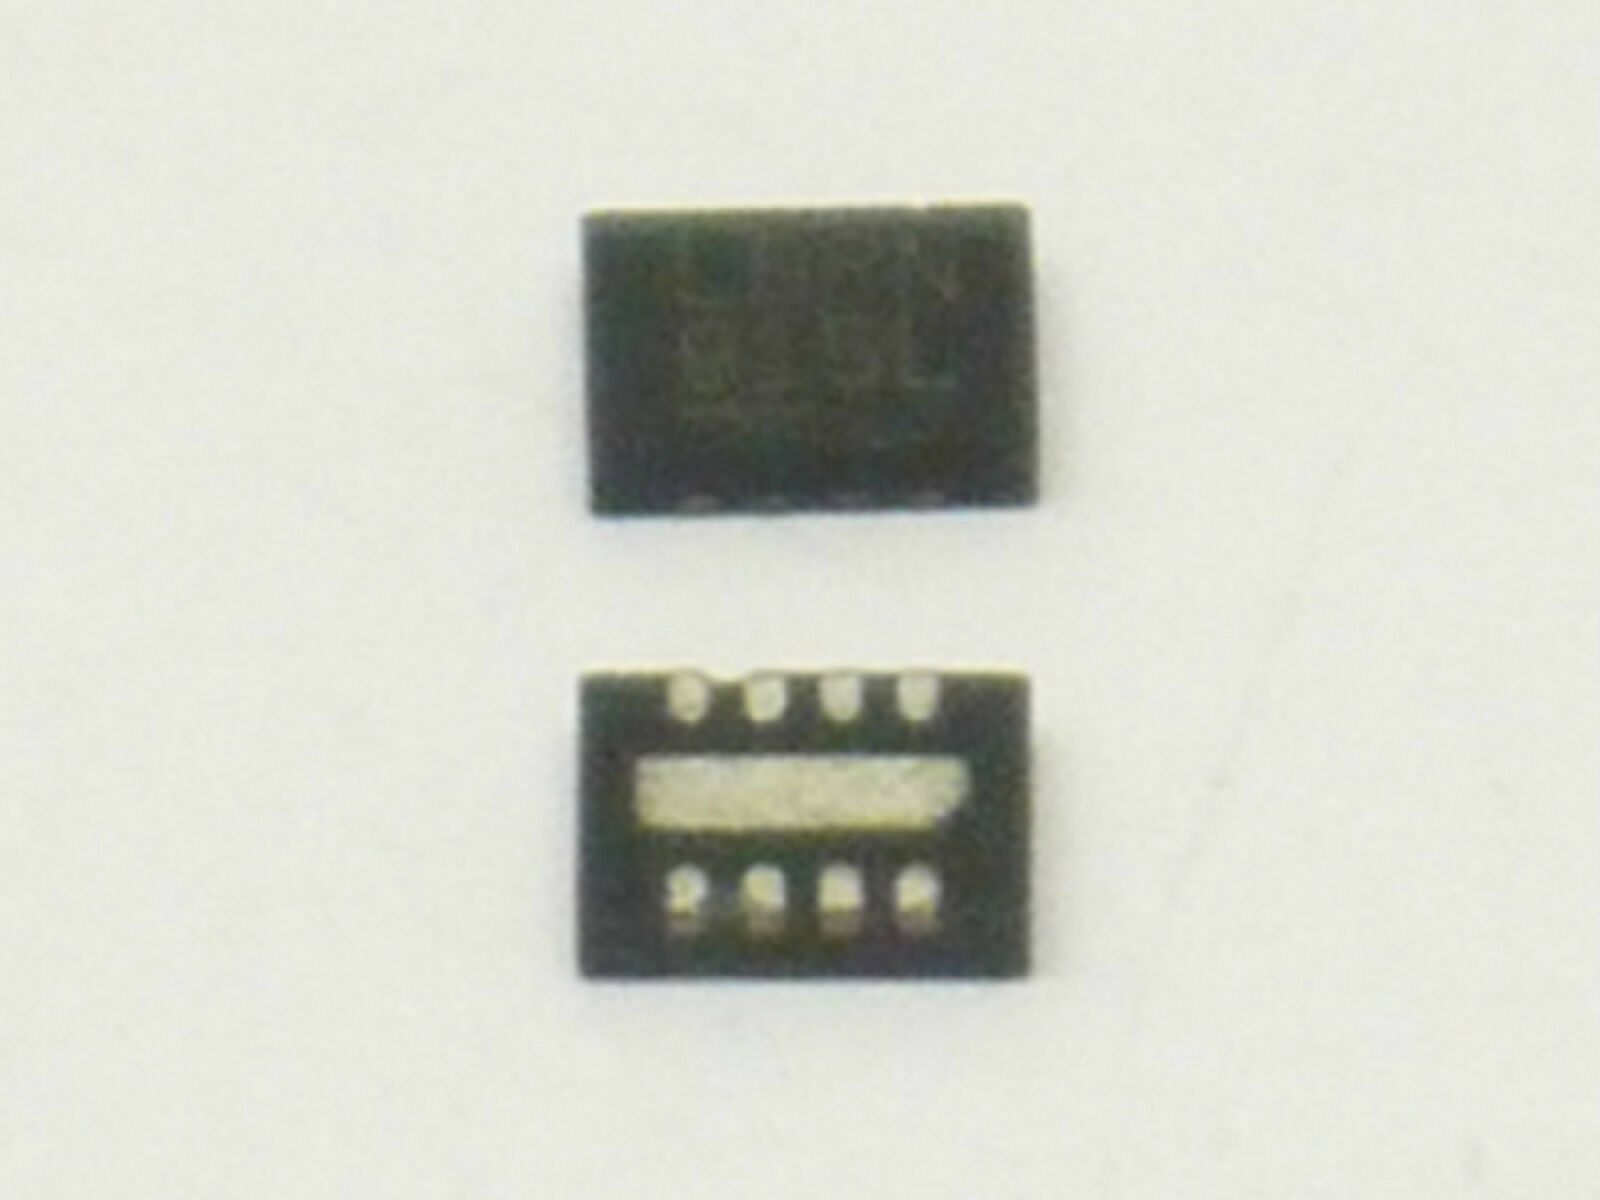 Lt3470eddb Lt3470 Eddb Qfn 8pin Power Ic Chip Chipset Ebay Lm358nlow Dual Operational Amplifiers Norton Secured Powered By Verisign